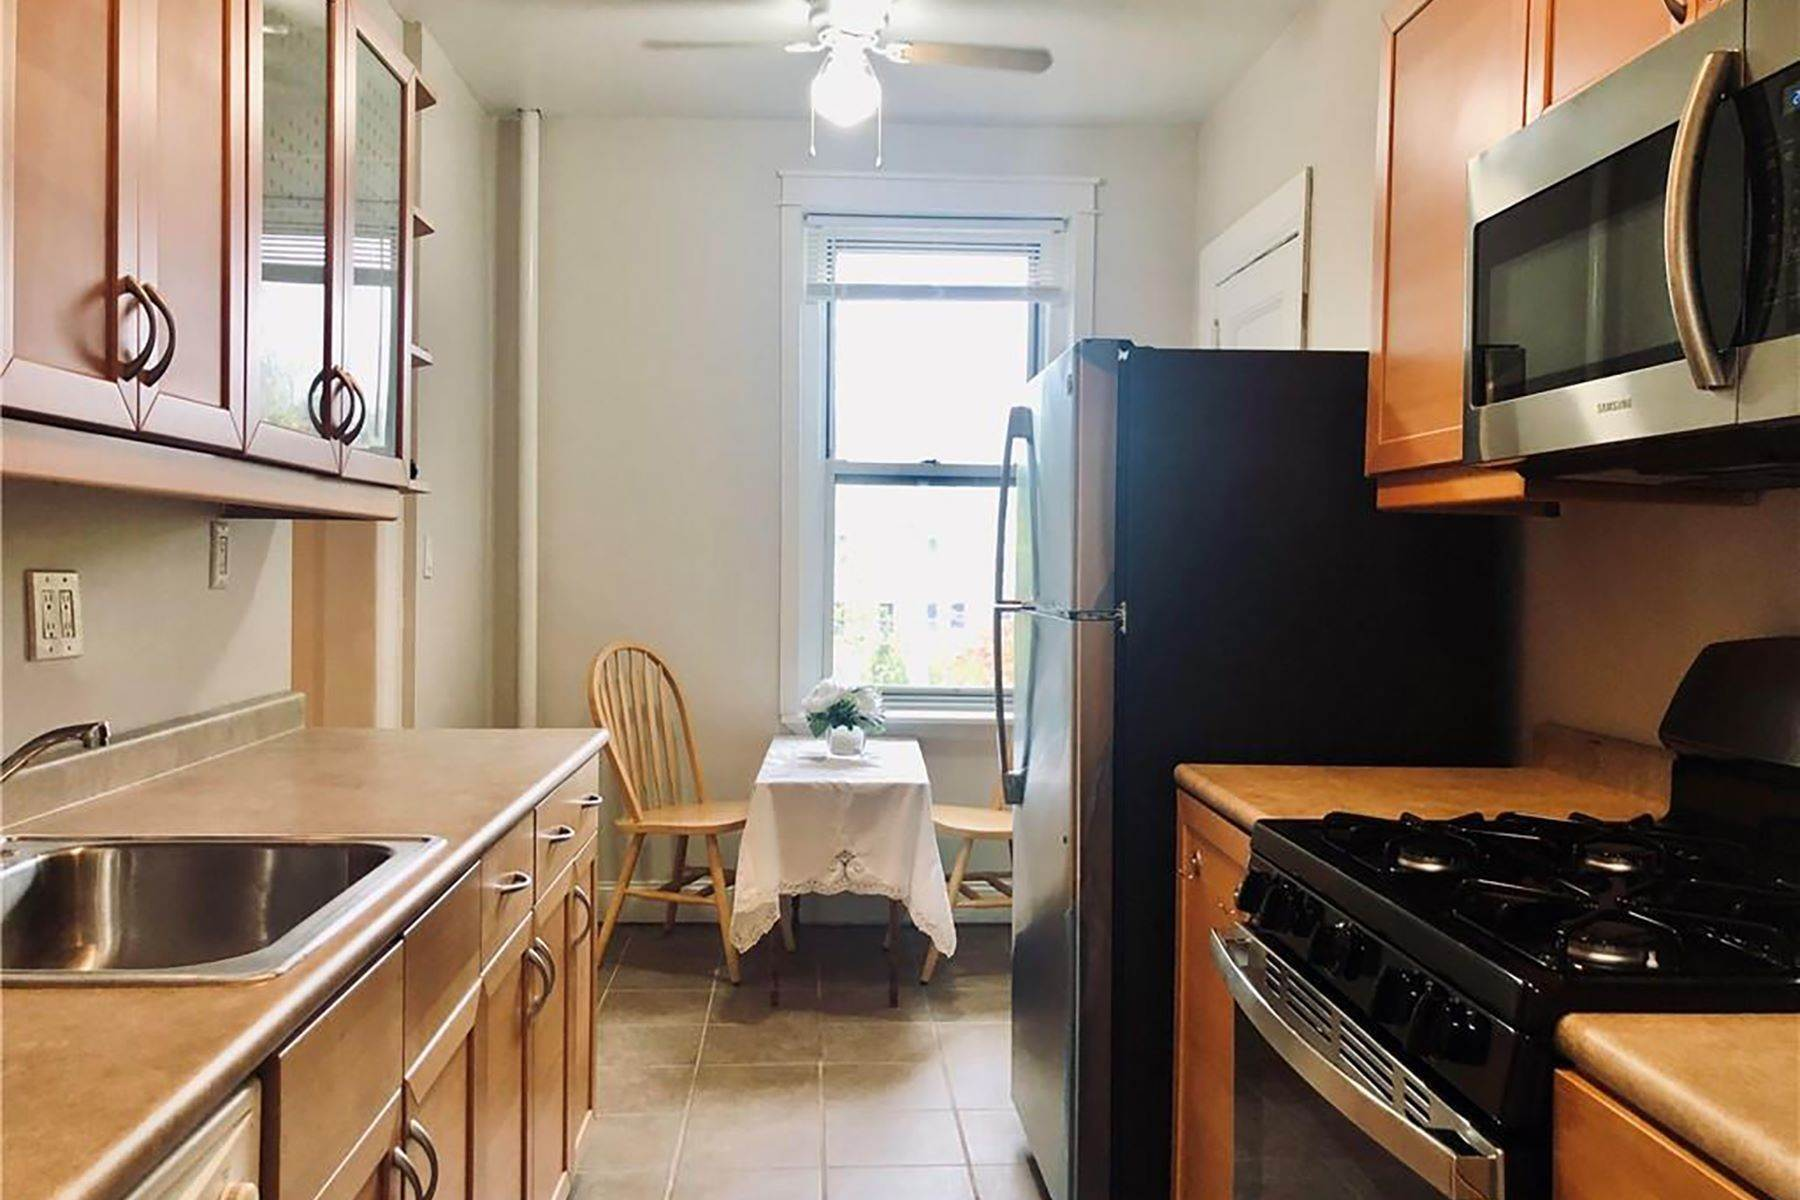 Co-op Properties for Sale at Spacious One Bedroom in Pet-Friendly Building! 472 Gramatan Avenue, 4J Mount Vernon, New York 10552 United States